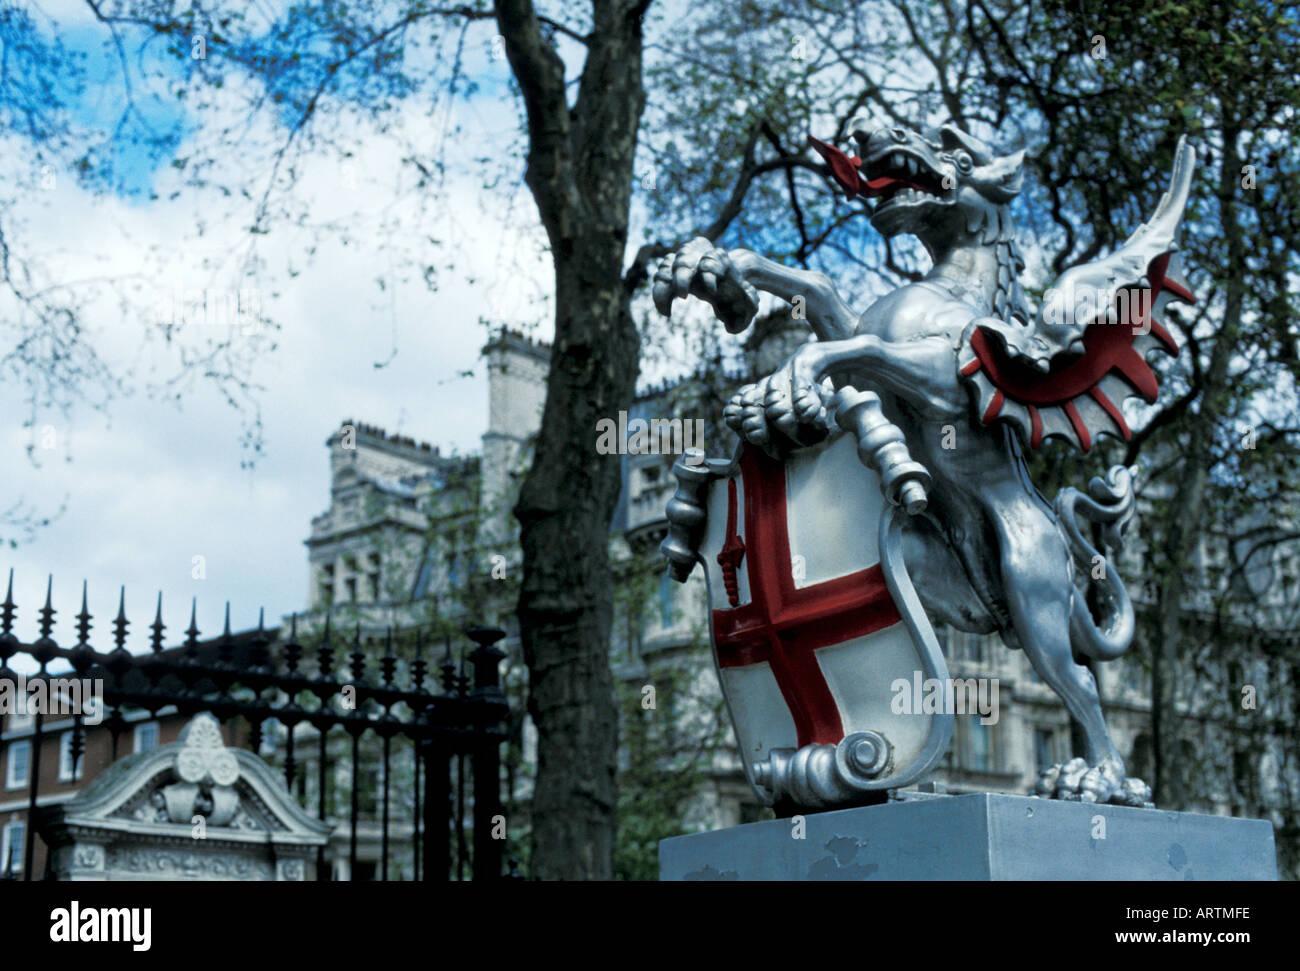 City of London Griffin and Shield emblem - Stock Image